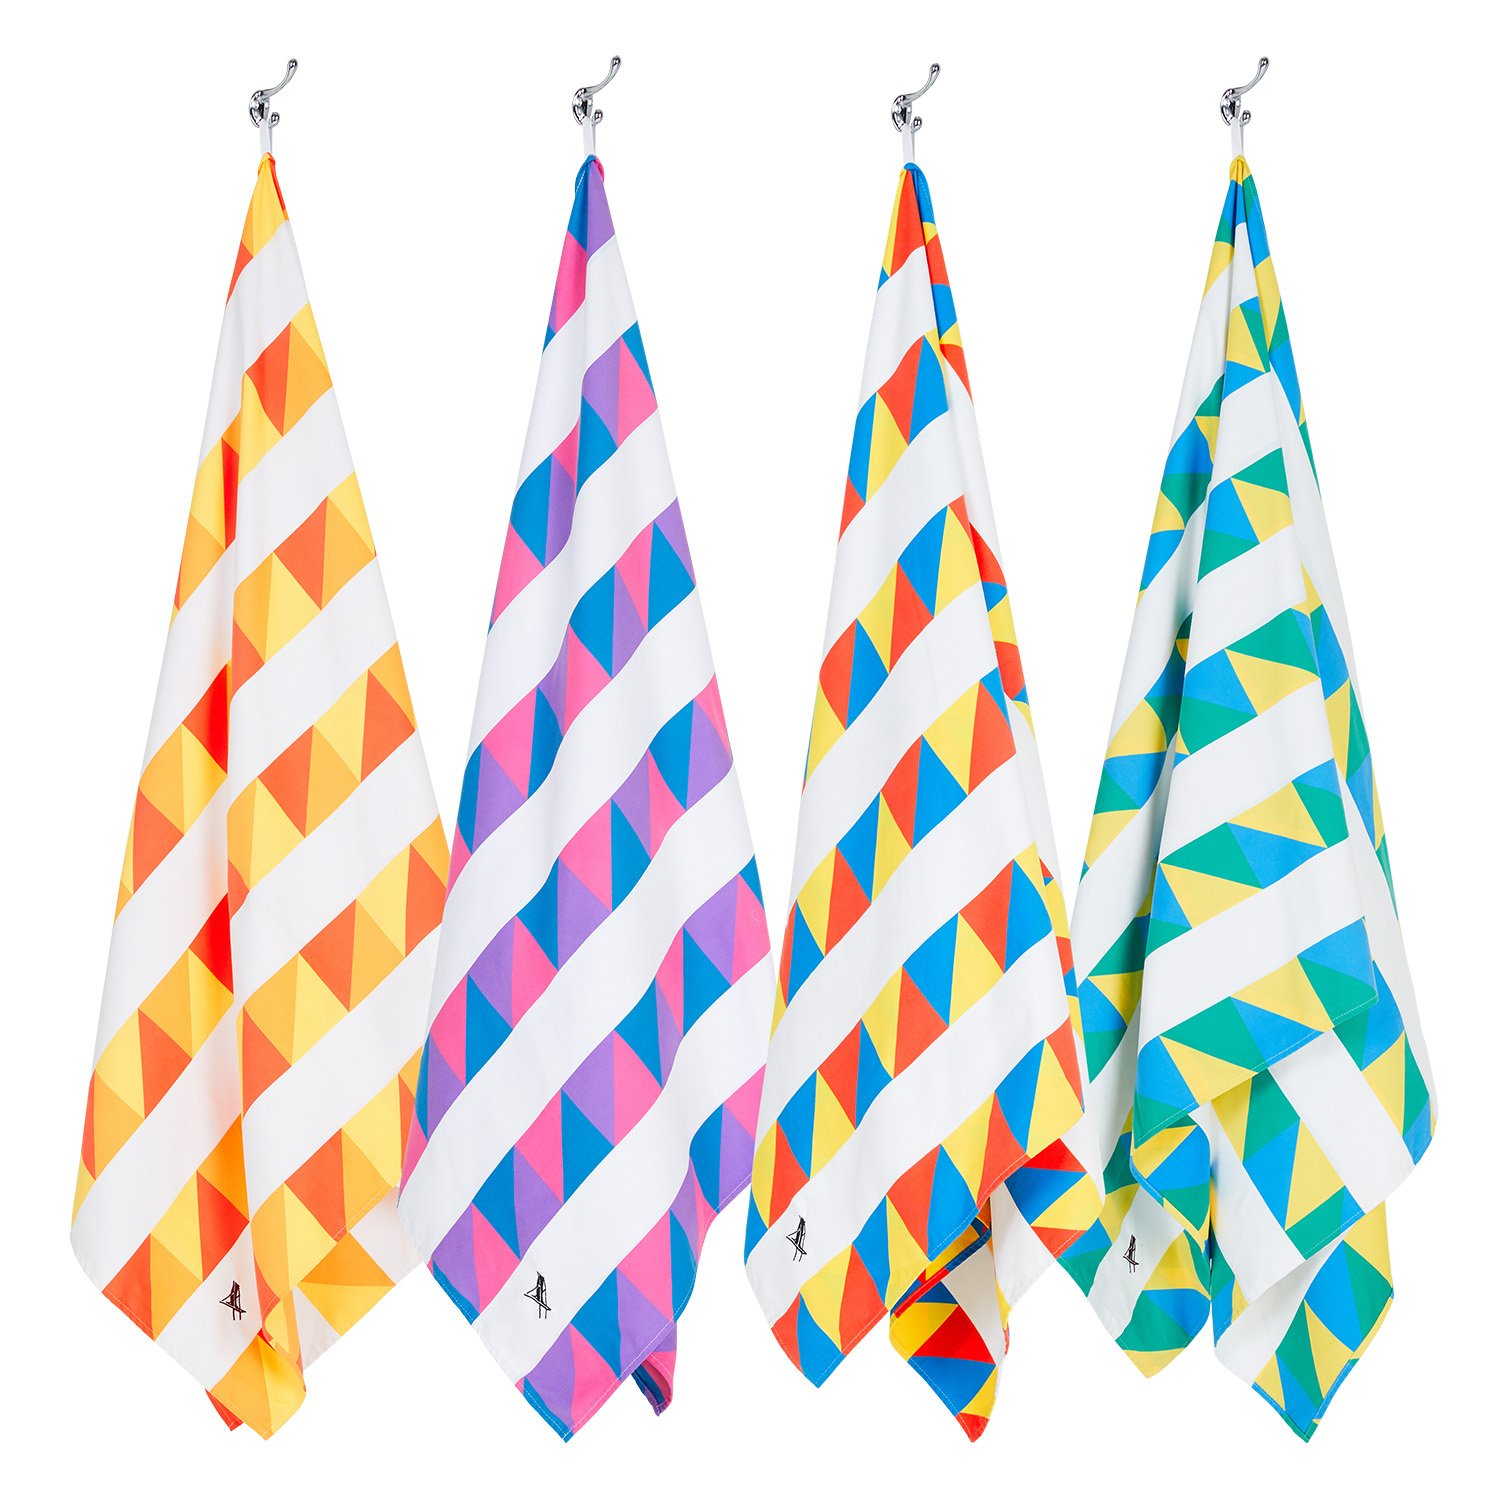 Dock & Bay Set of Beach Towels - Set of 4, Extra Large (200x90cm, 78x35) - Quick Dry, Compact for Swim, Pool, Boat